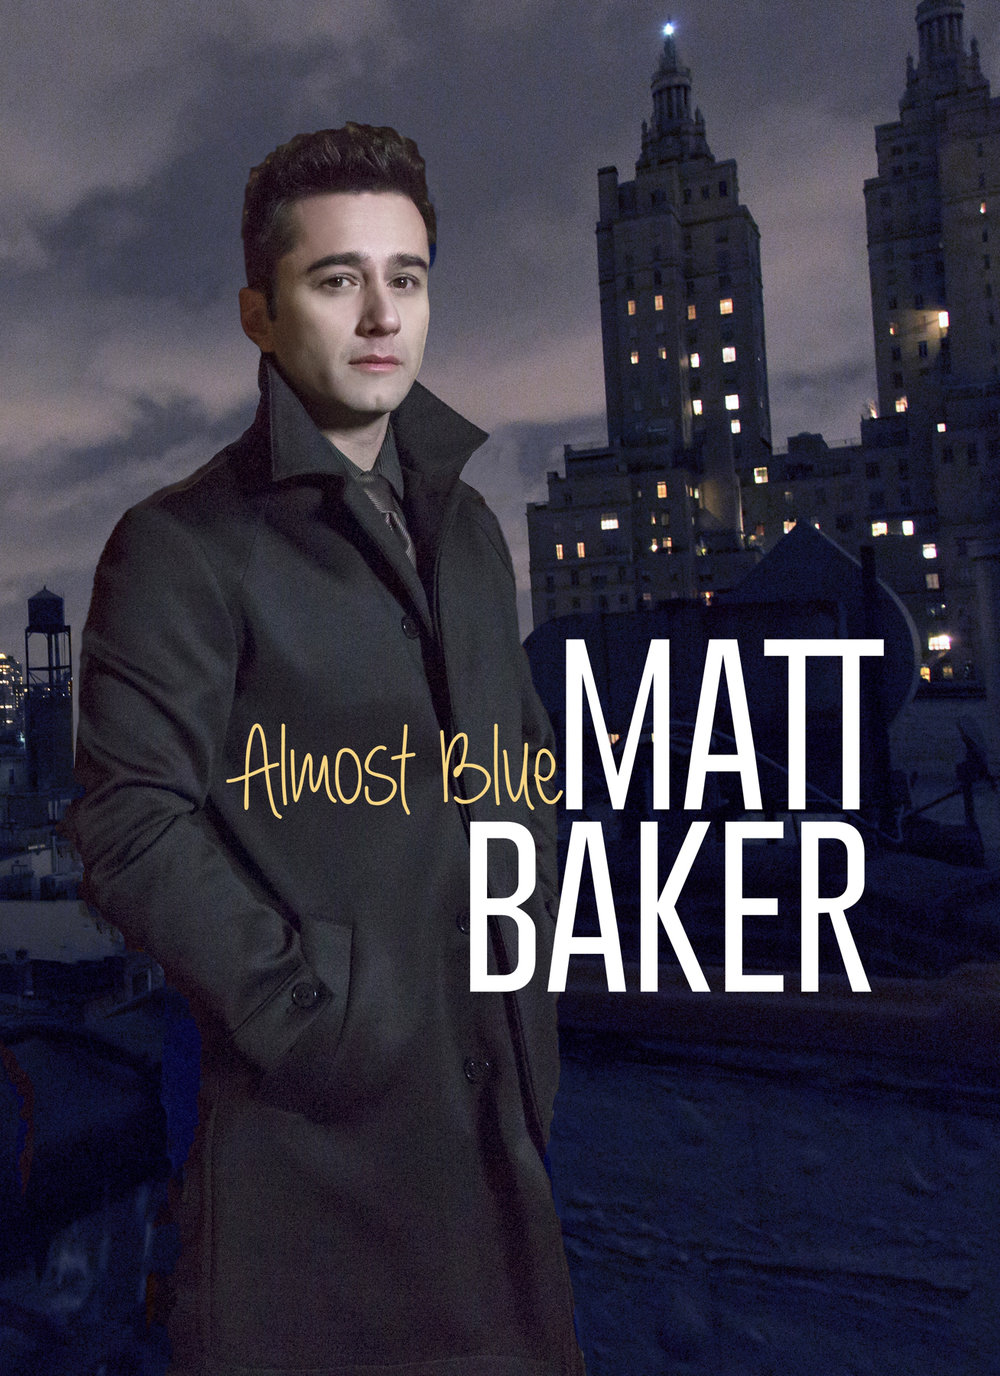 MattBaker_Vertical cover photo with artwork_Poster WEB size.jpg